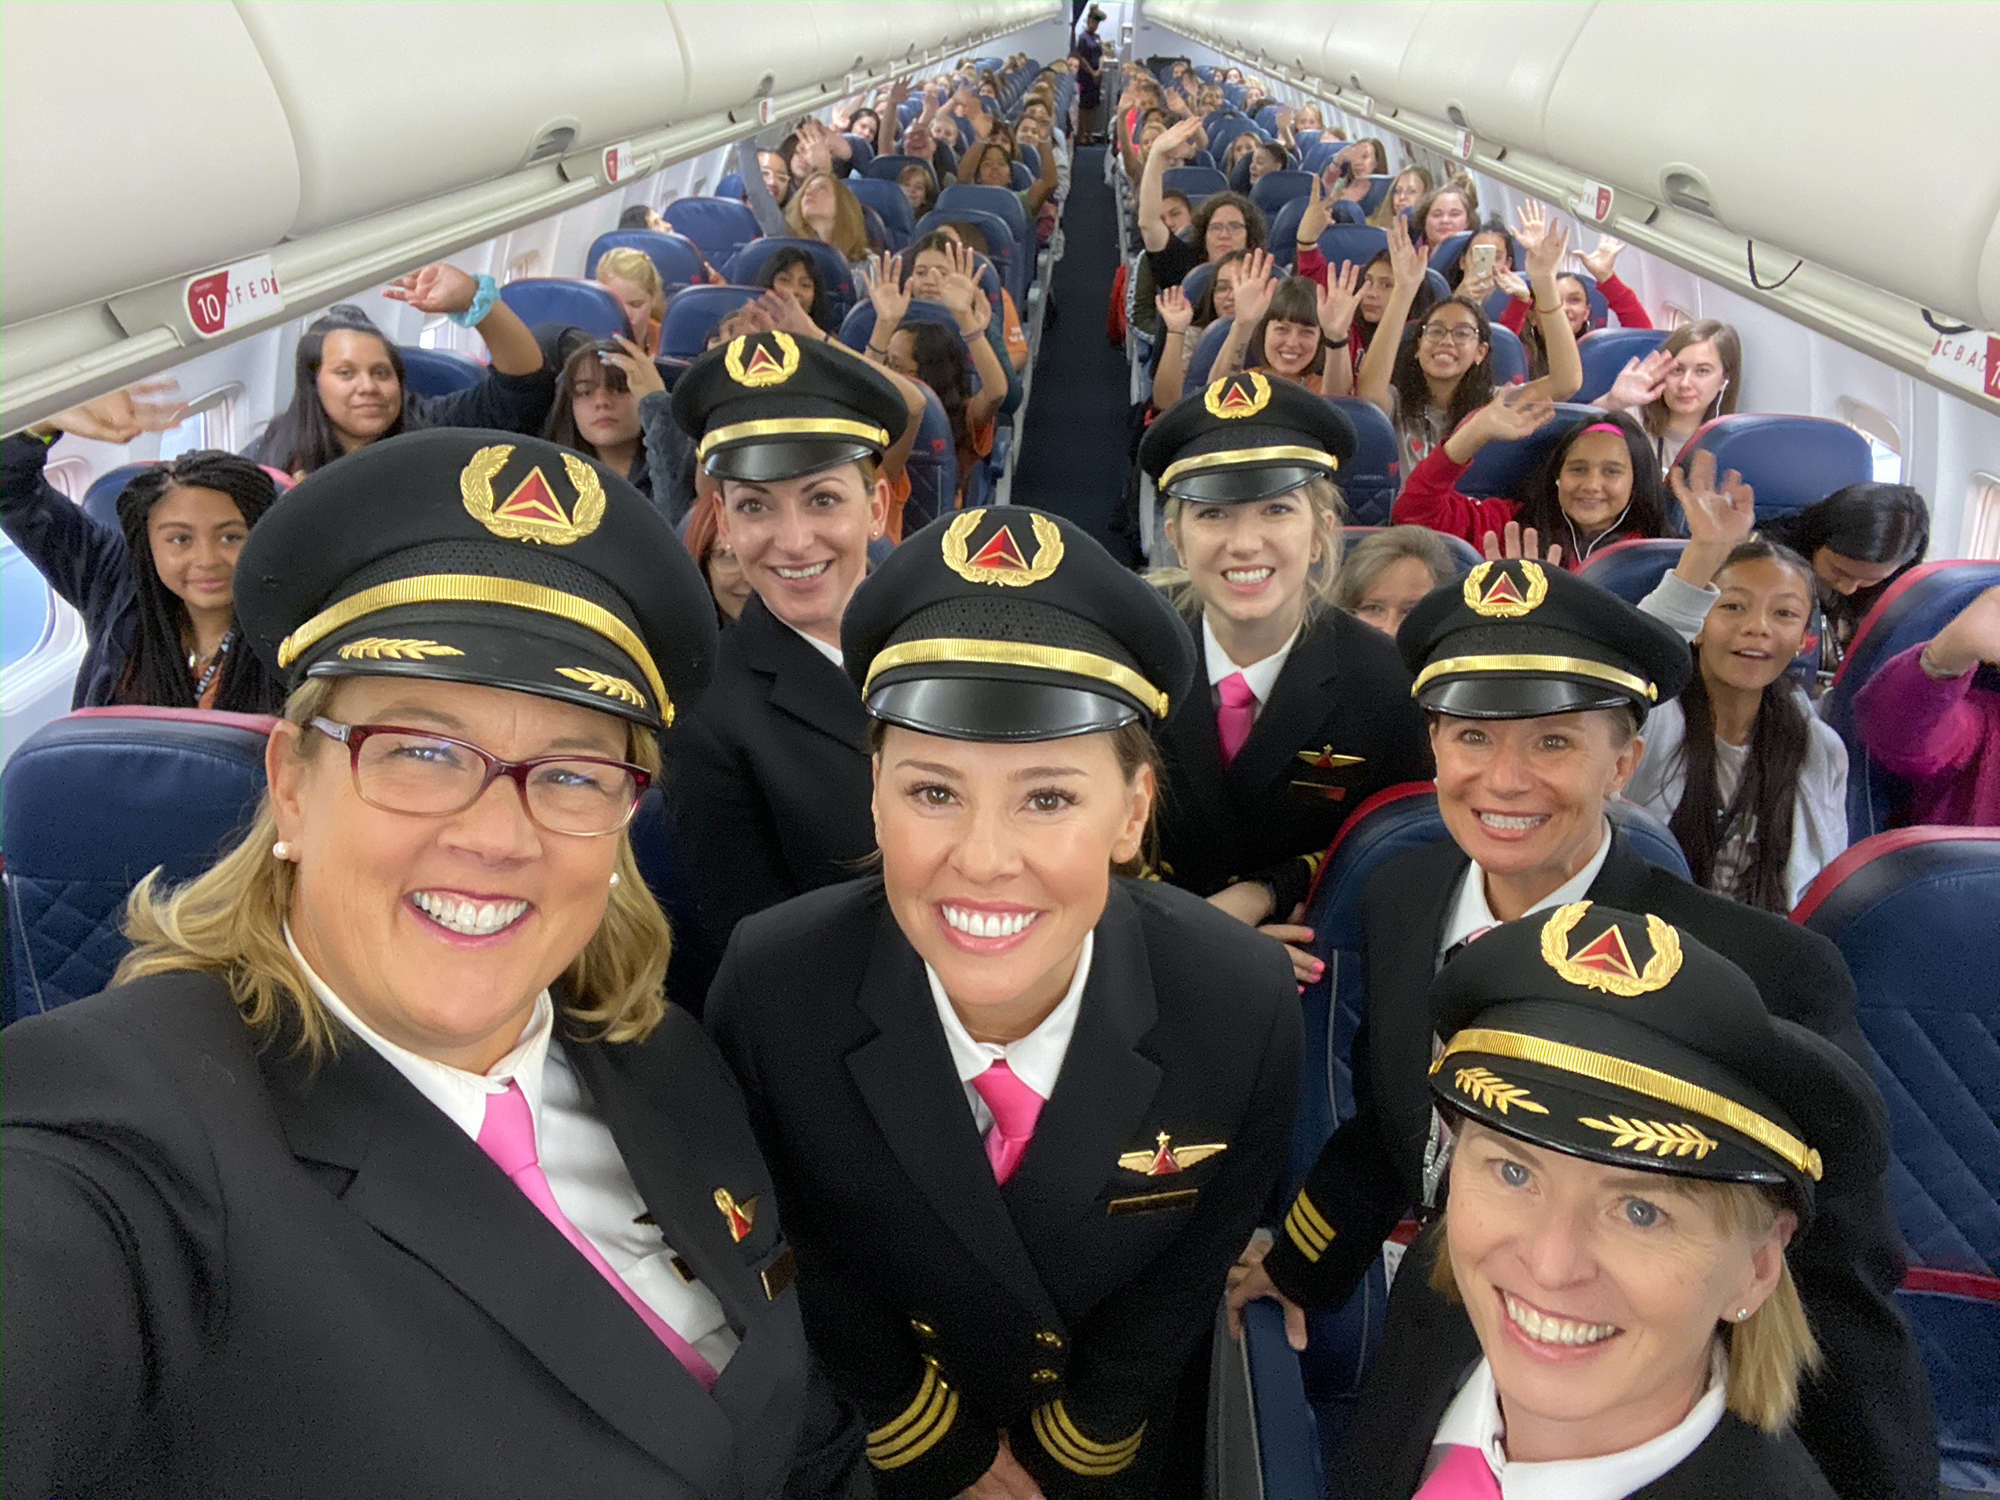 Delta today celebrated International Girls in Aviation Day with its fifth-annual WING Flight -  Women Inspiring our Next Generation  - carrying 120 girls ages 12-18 from Salt Lake City to NASA in Houston as we work to close the gender gap in...